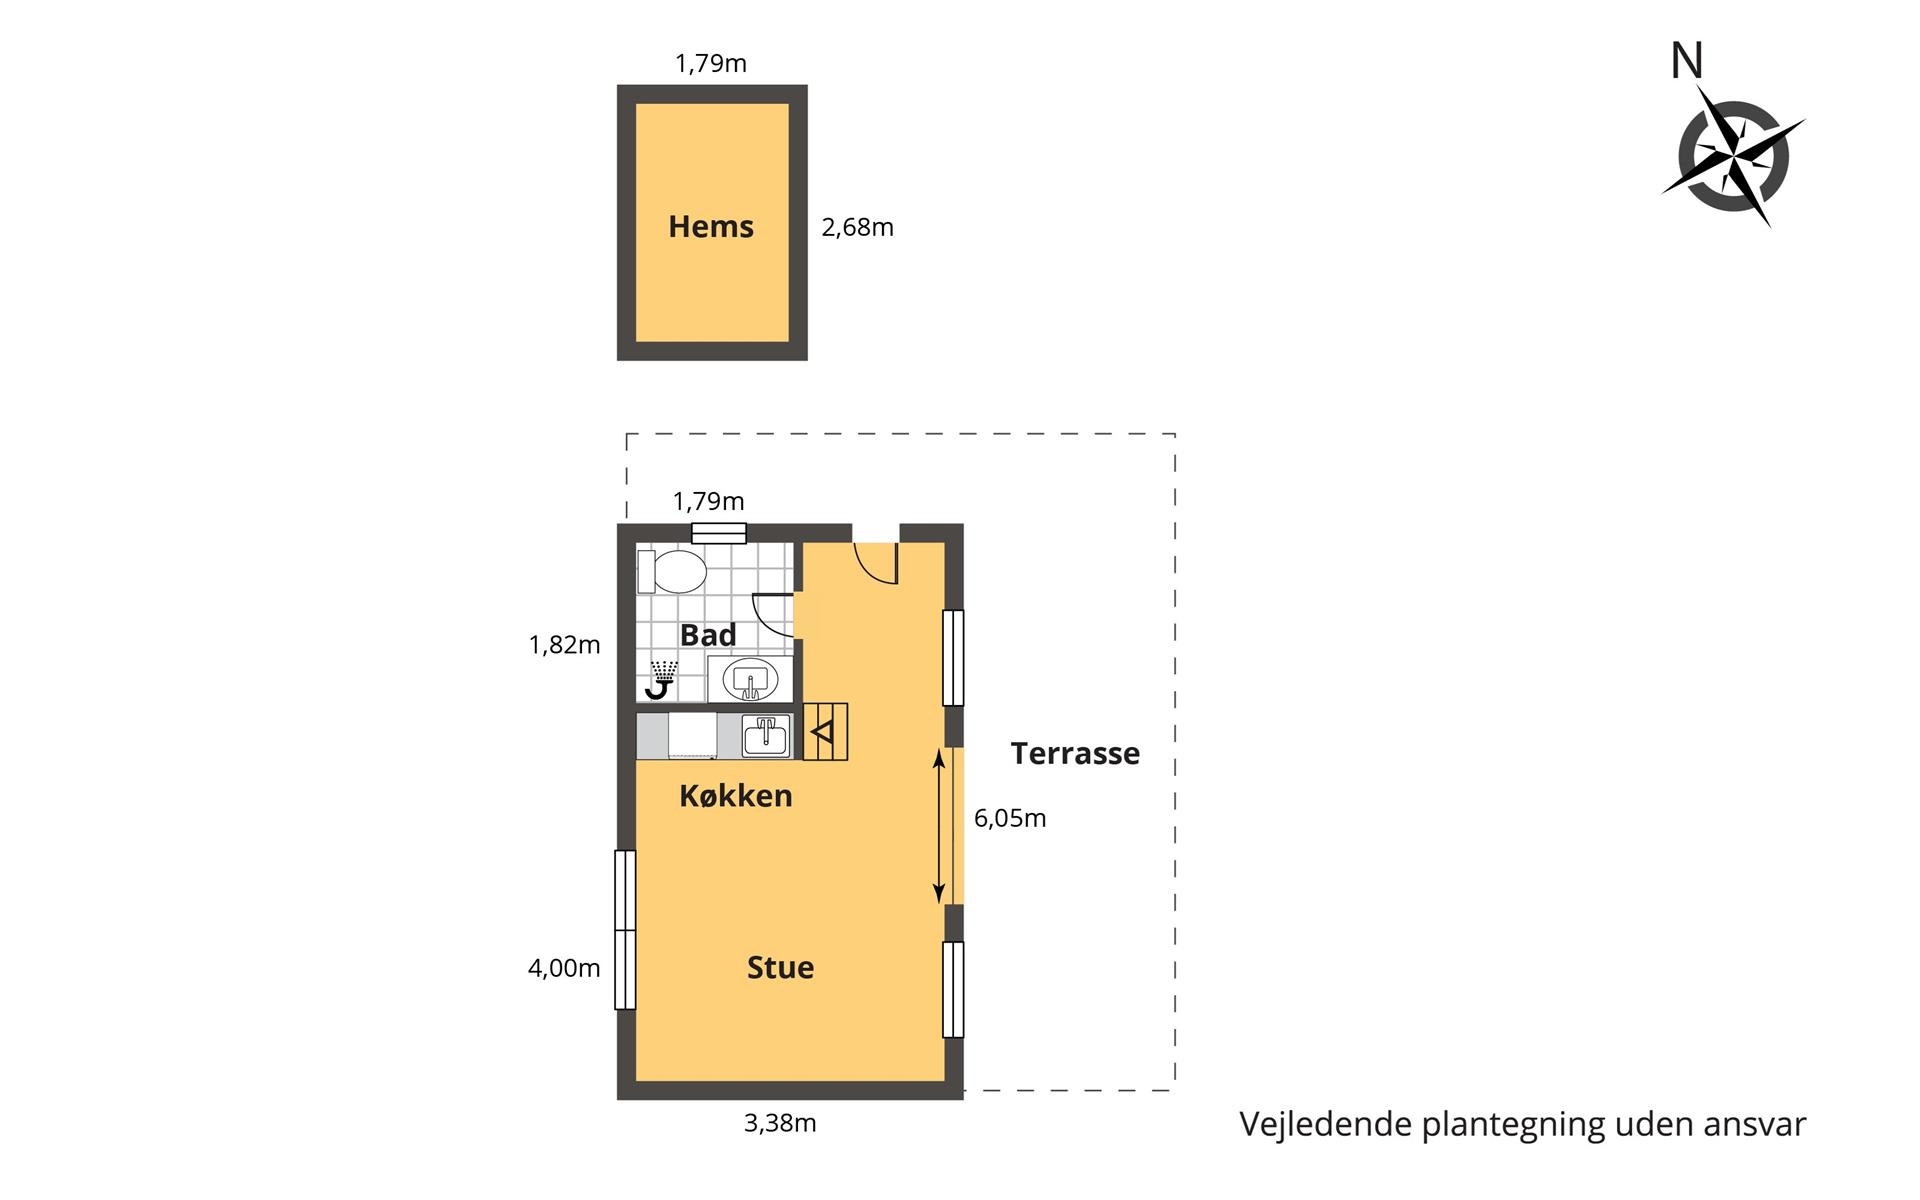 Gallery scandinavian modern tiny house simon steffensen for Scandinavian house plans